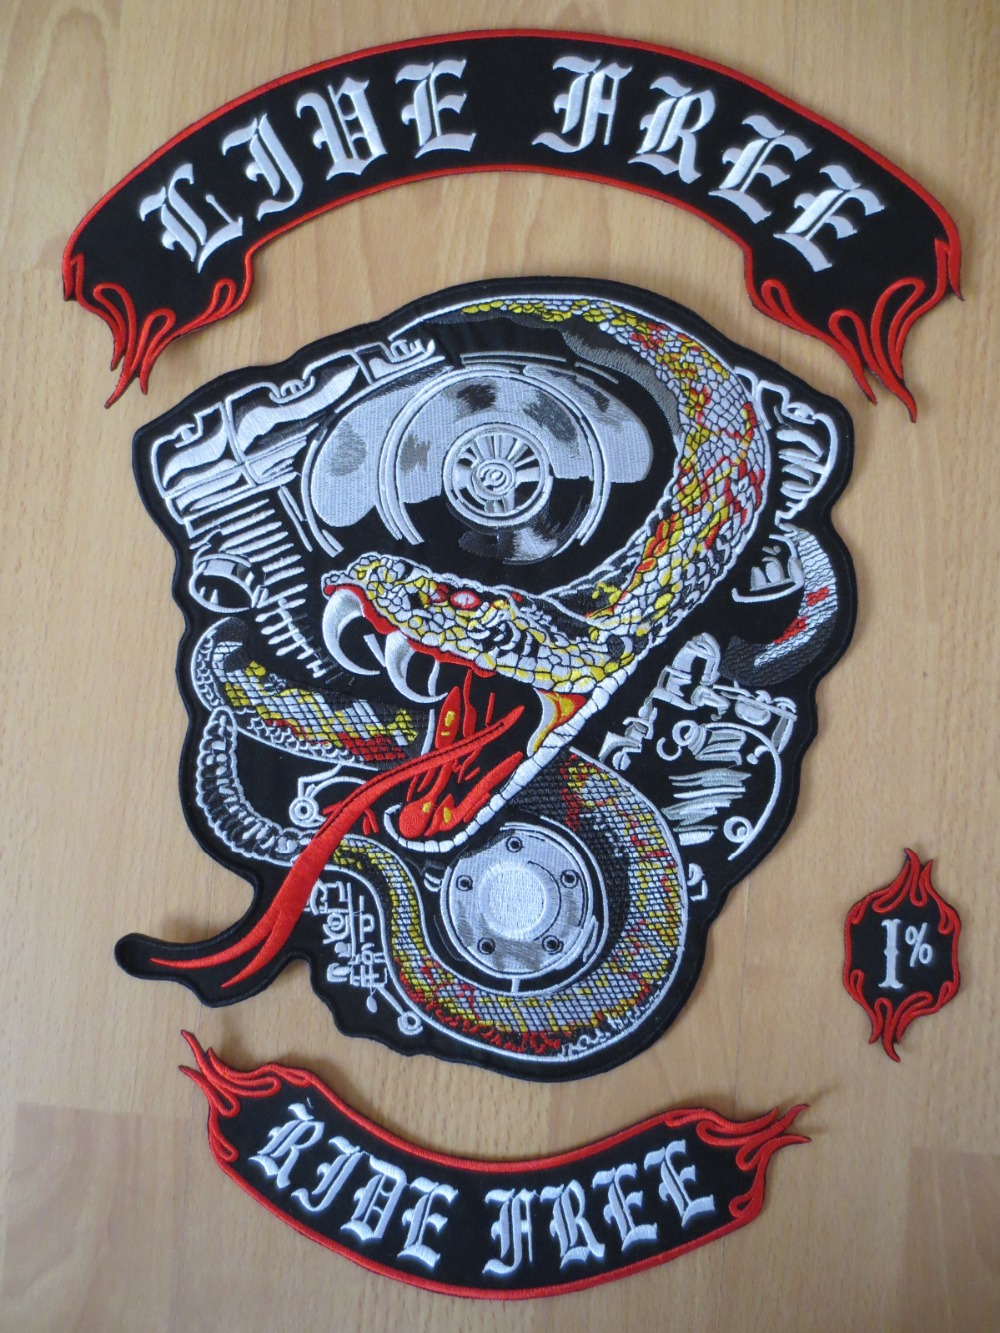 17 inches stor slange stor Broderi Patches for Jacket Motorcycle Biker